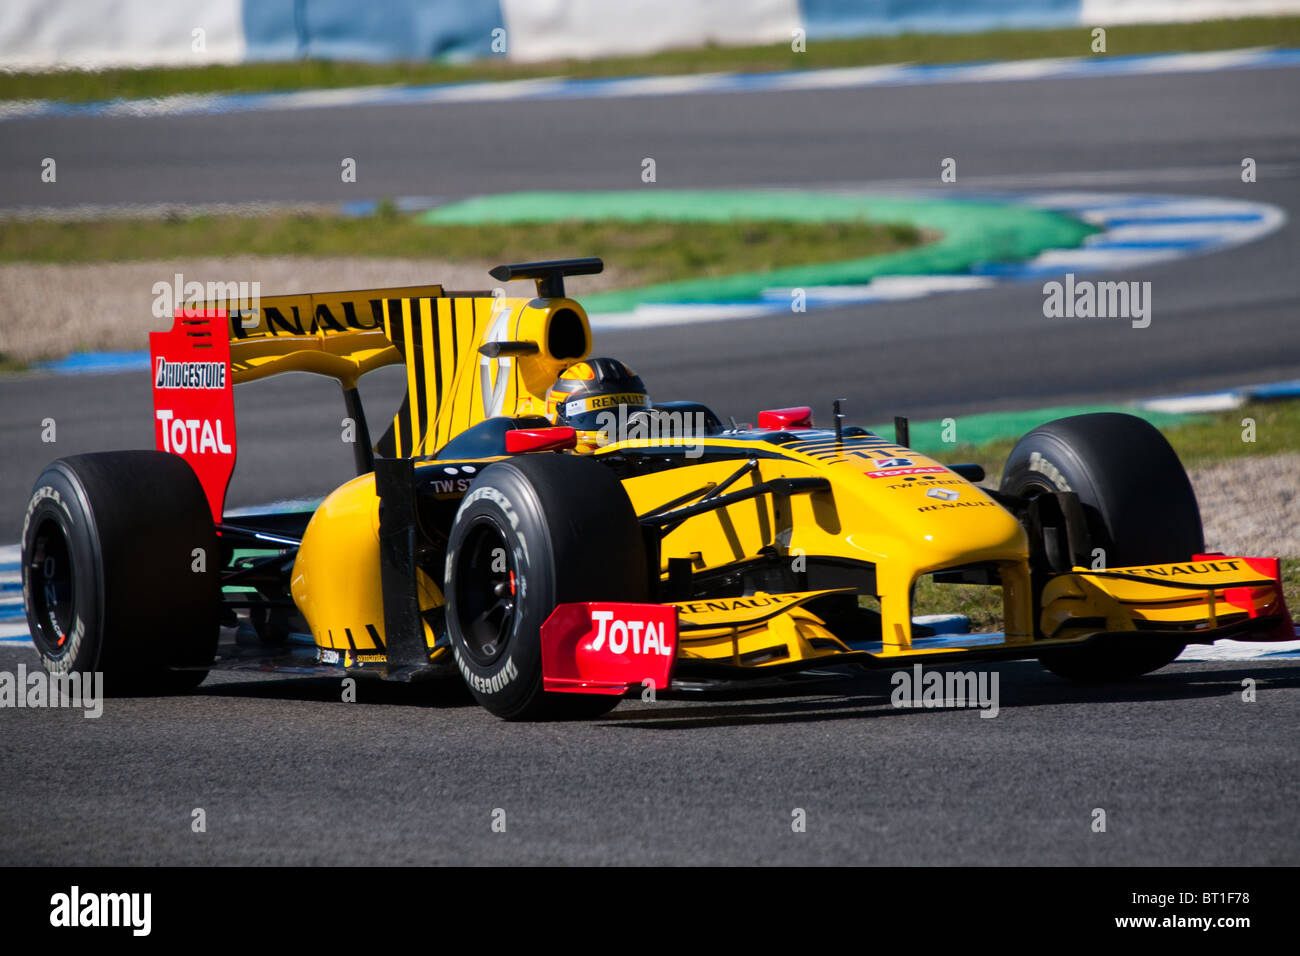 Robert Kubica at the 2010 Jerez practice in his RENAULT, Formula 1 car, leaving the chicane. - Stock Image